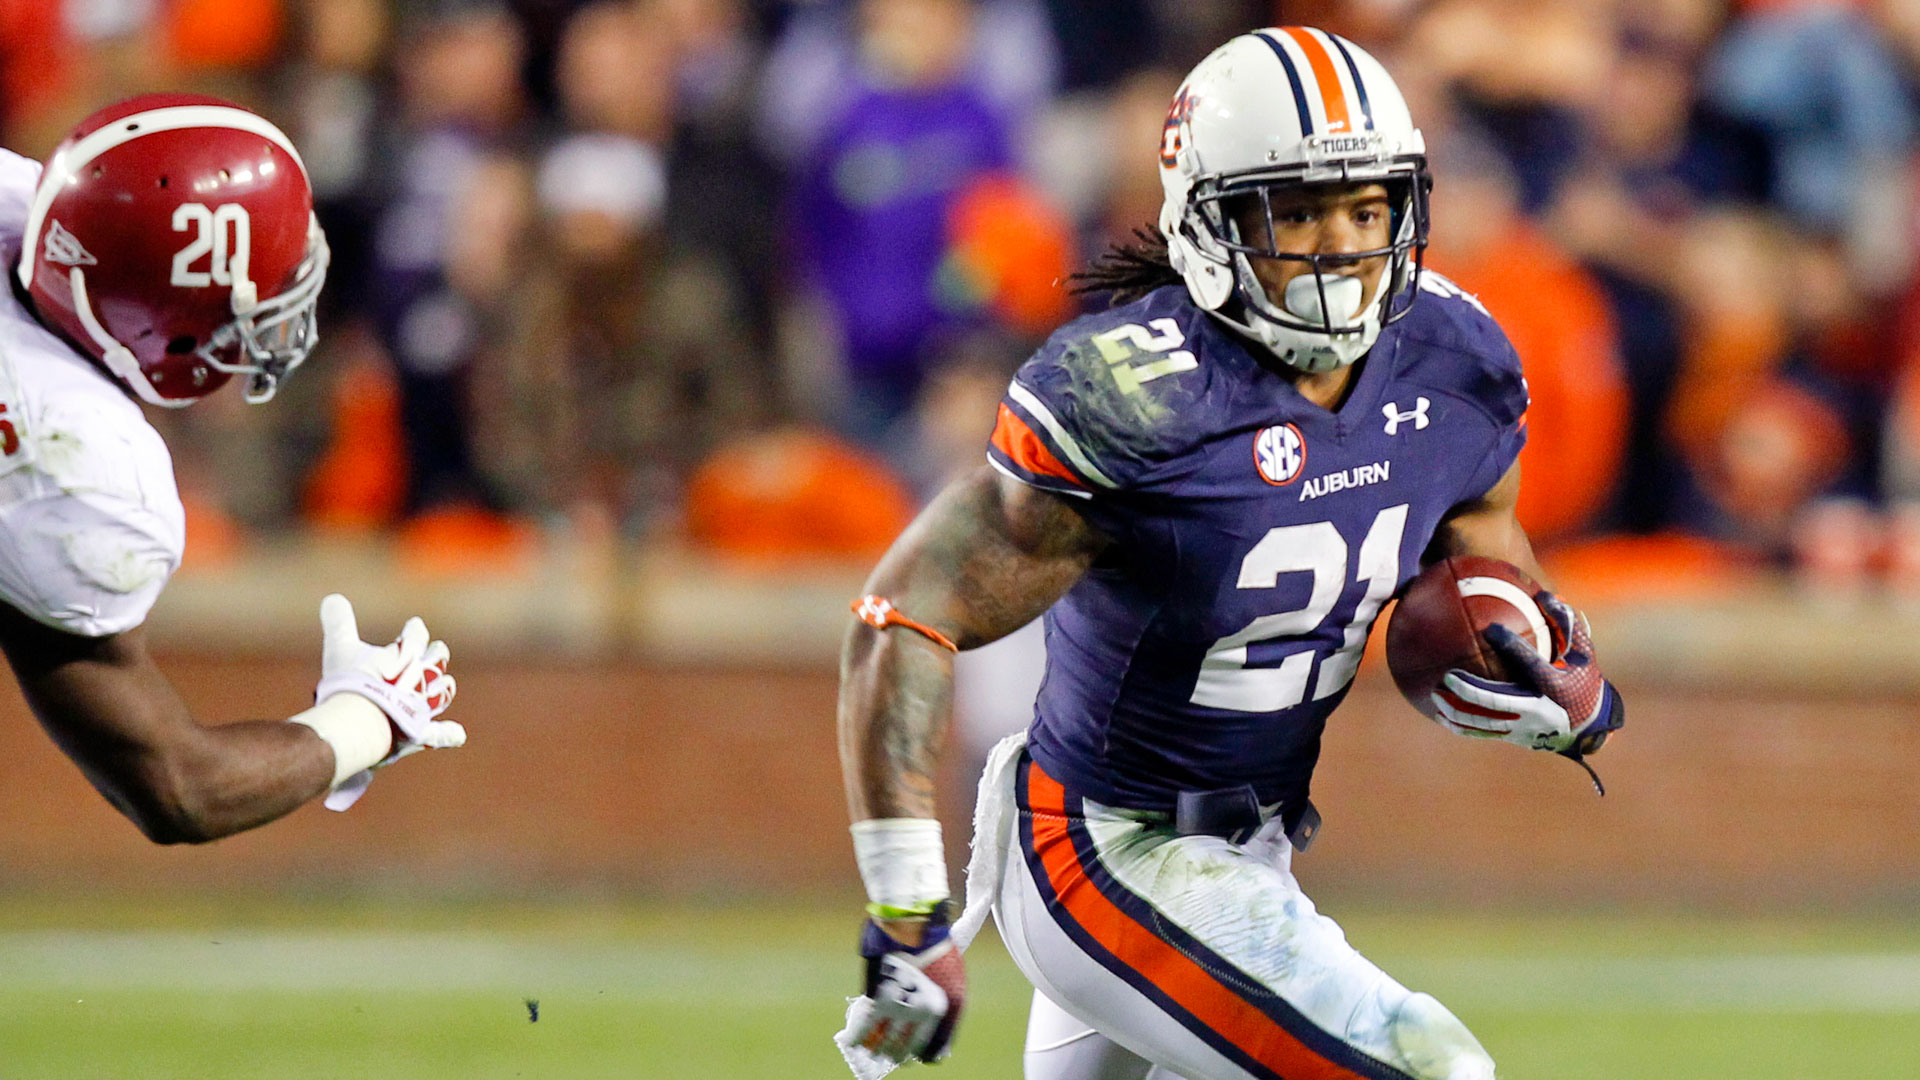 2014 NFL Draft -- Rams select Tre Mason in third round